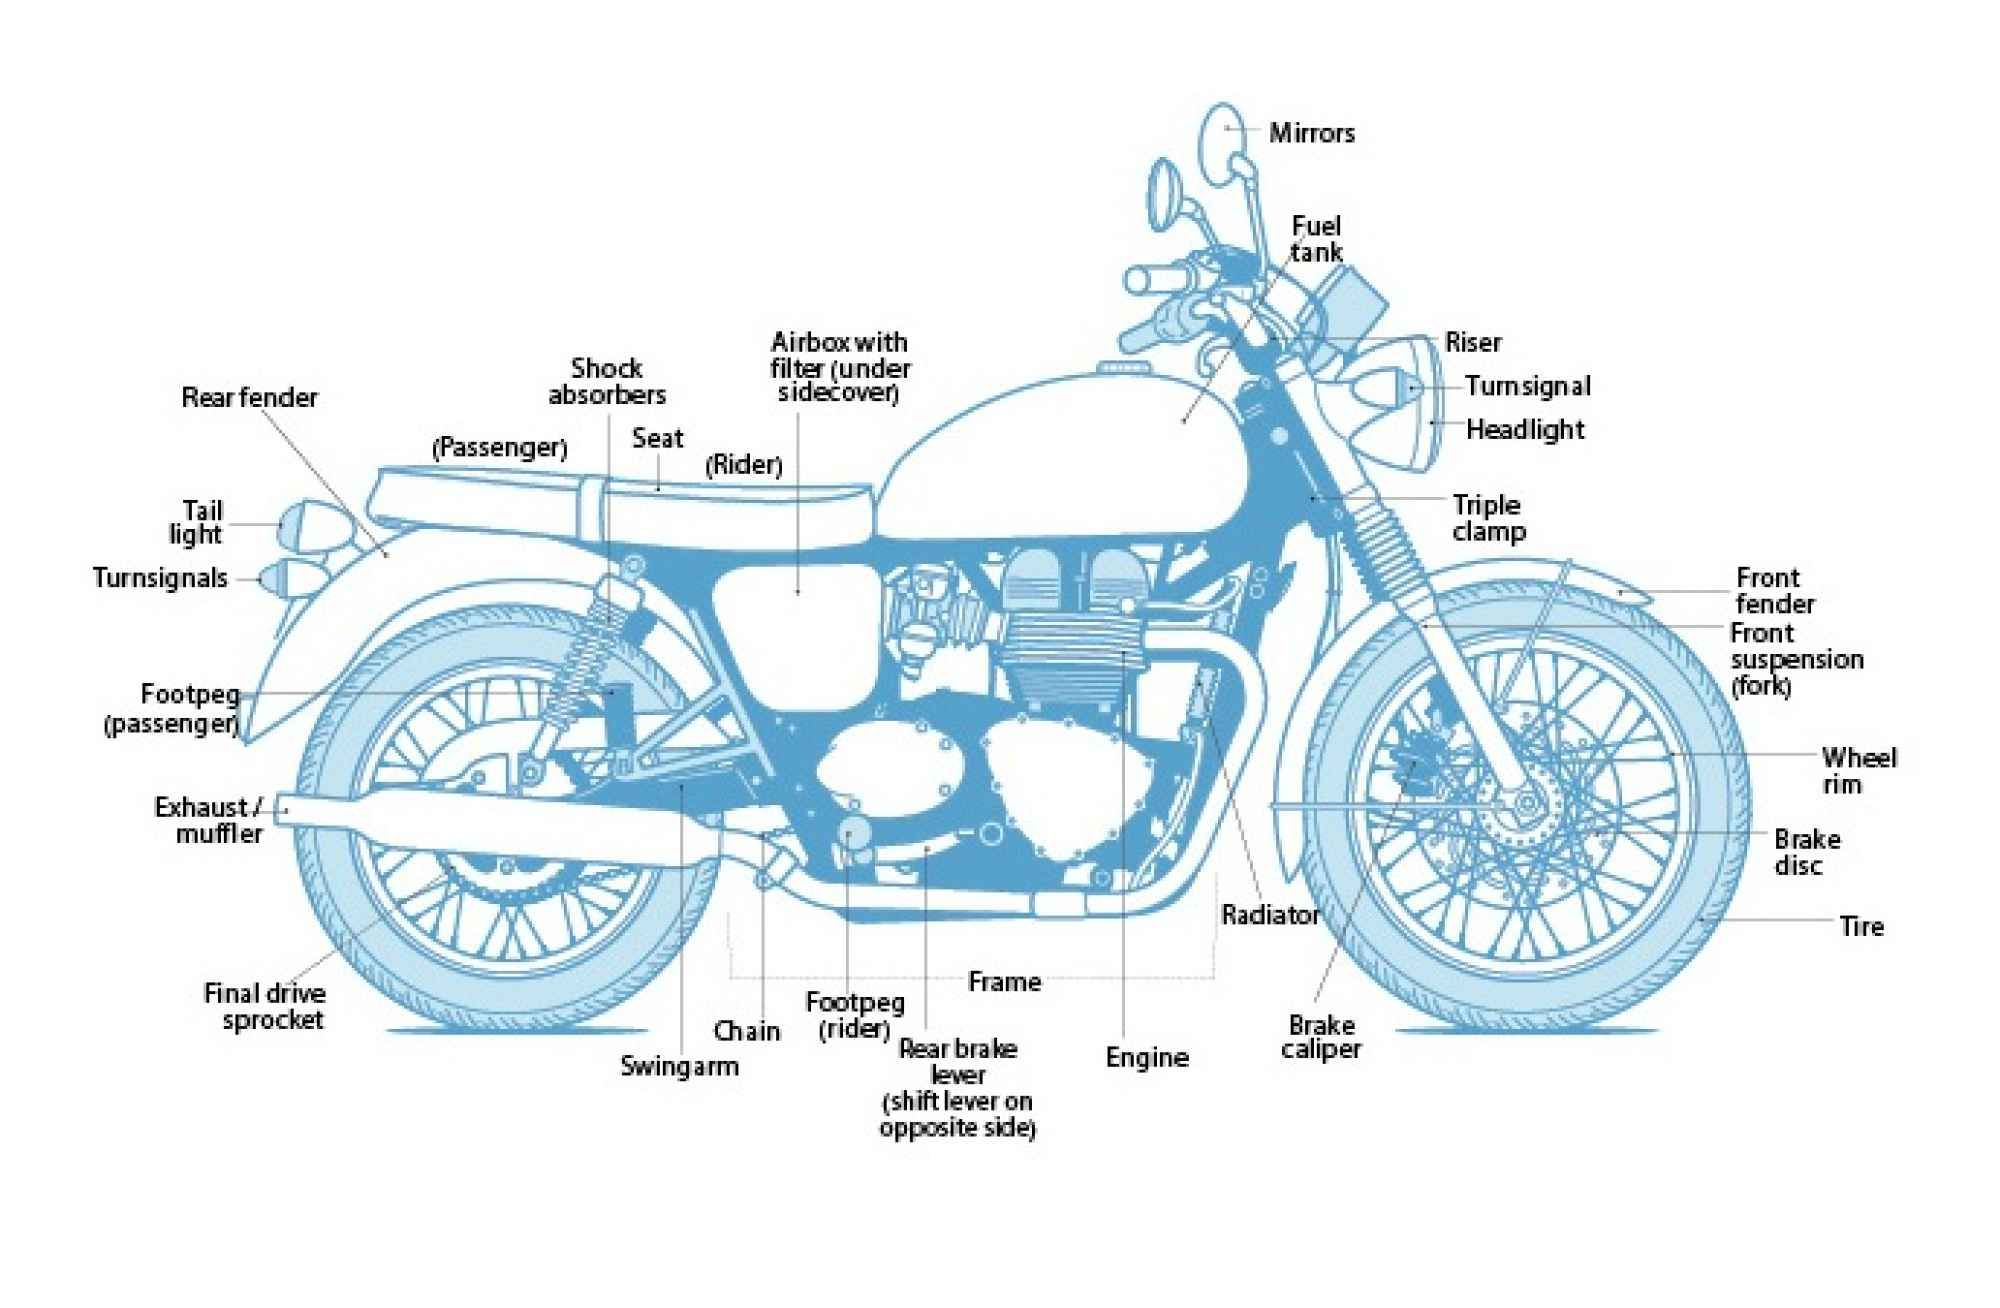 motorcycle diagram motorcycles motorcycle cafe racer bikes harley davidson motorcycle parts diagram [ 2000 x 1308 Pixel ]